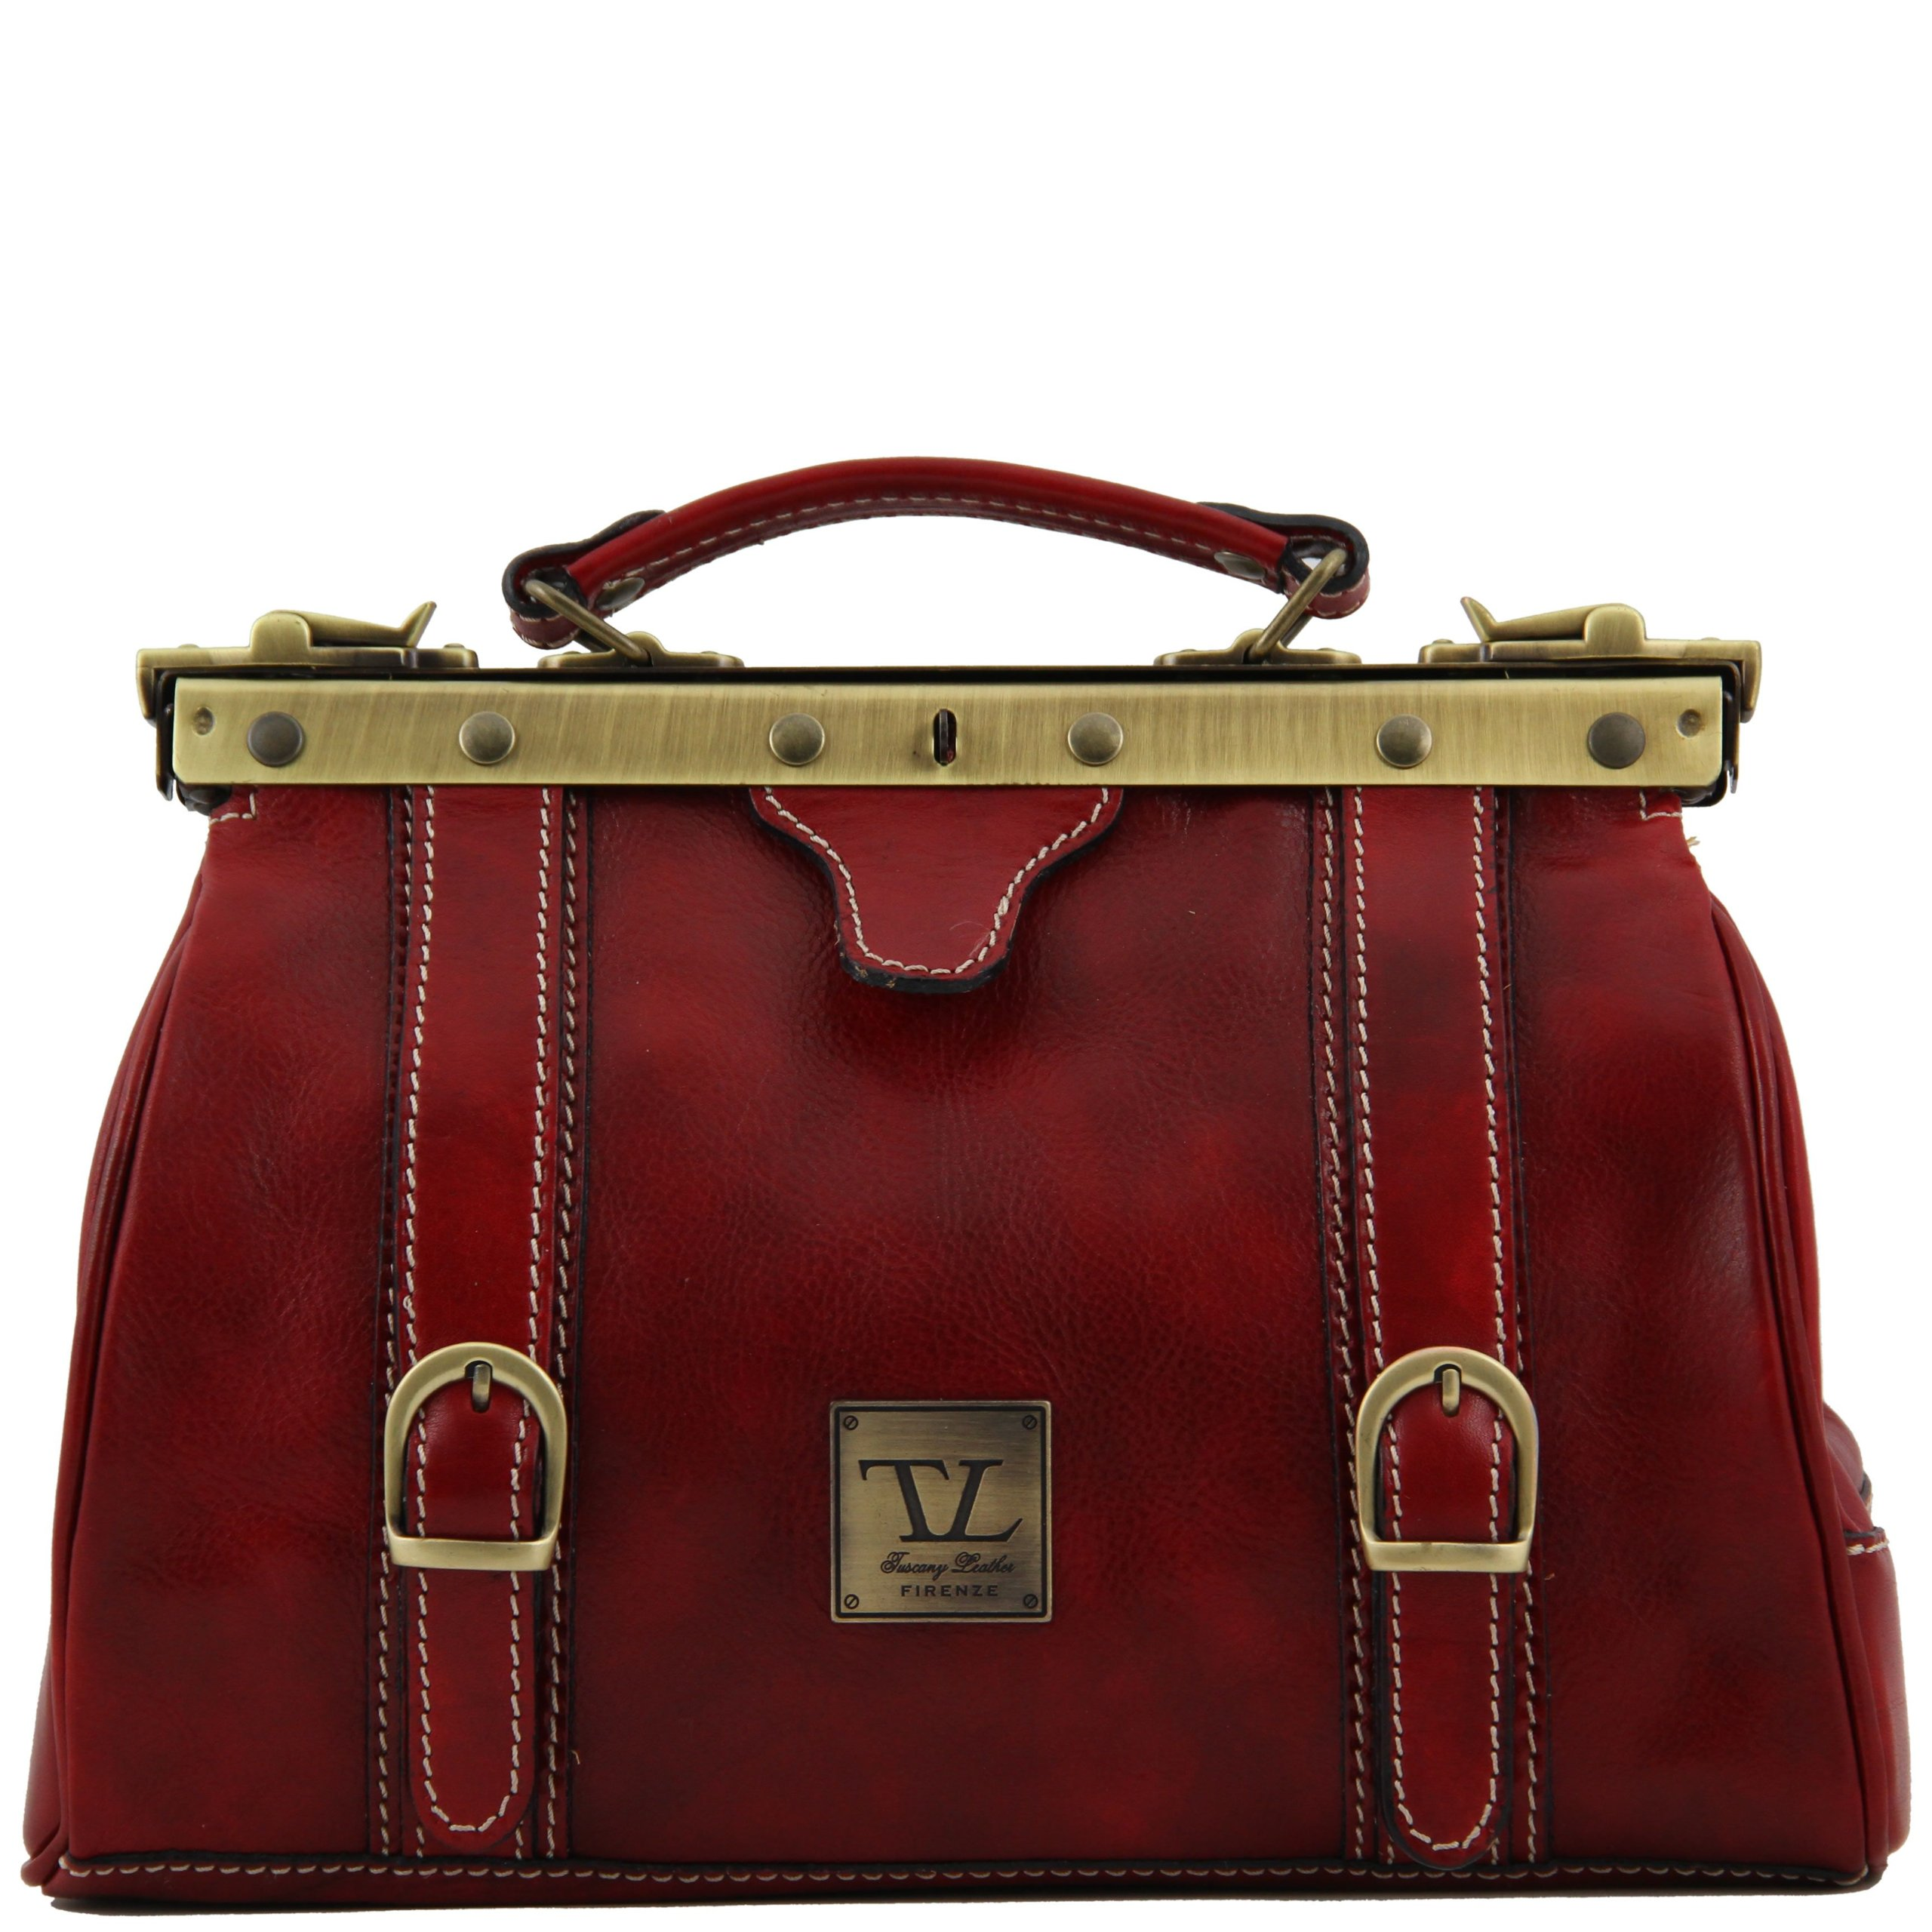 Tuscany Leather Monalisa Doctor gladstone leather bag with front straps Red by Tuscany Leather (Image #1)